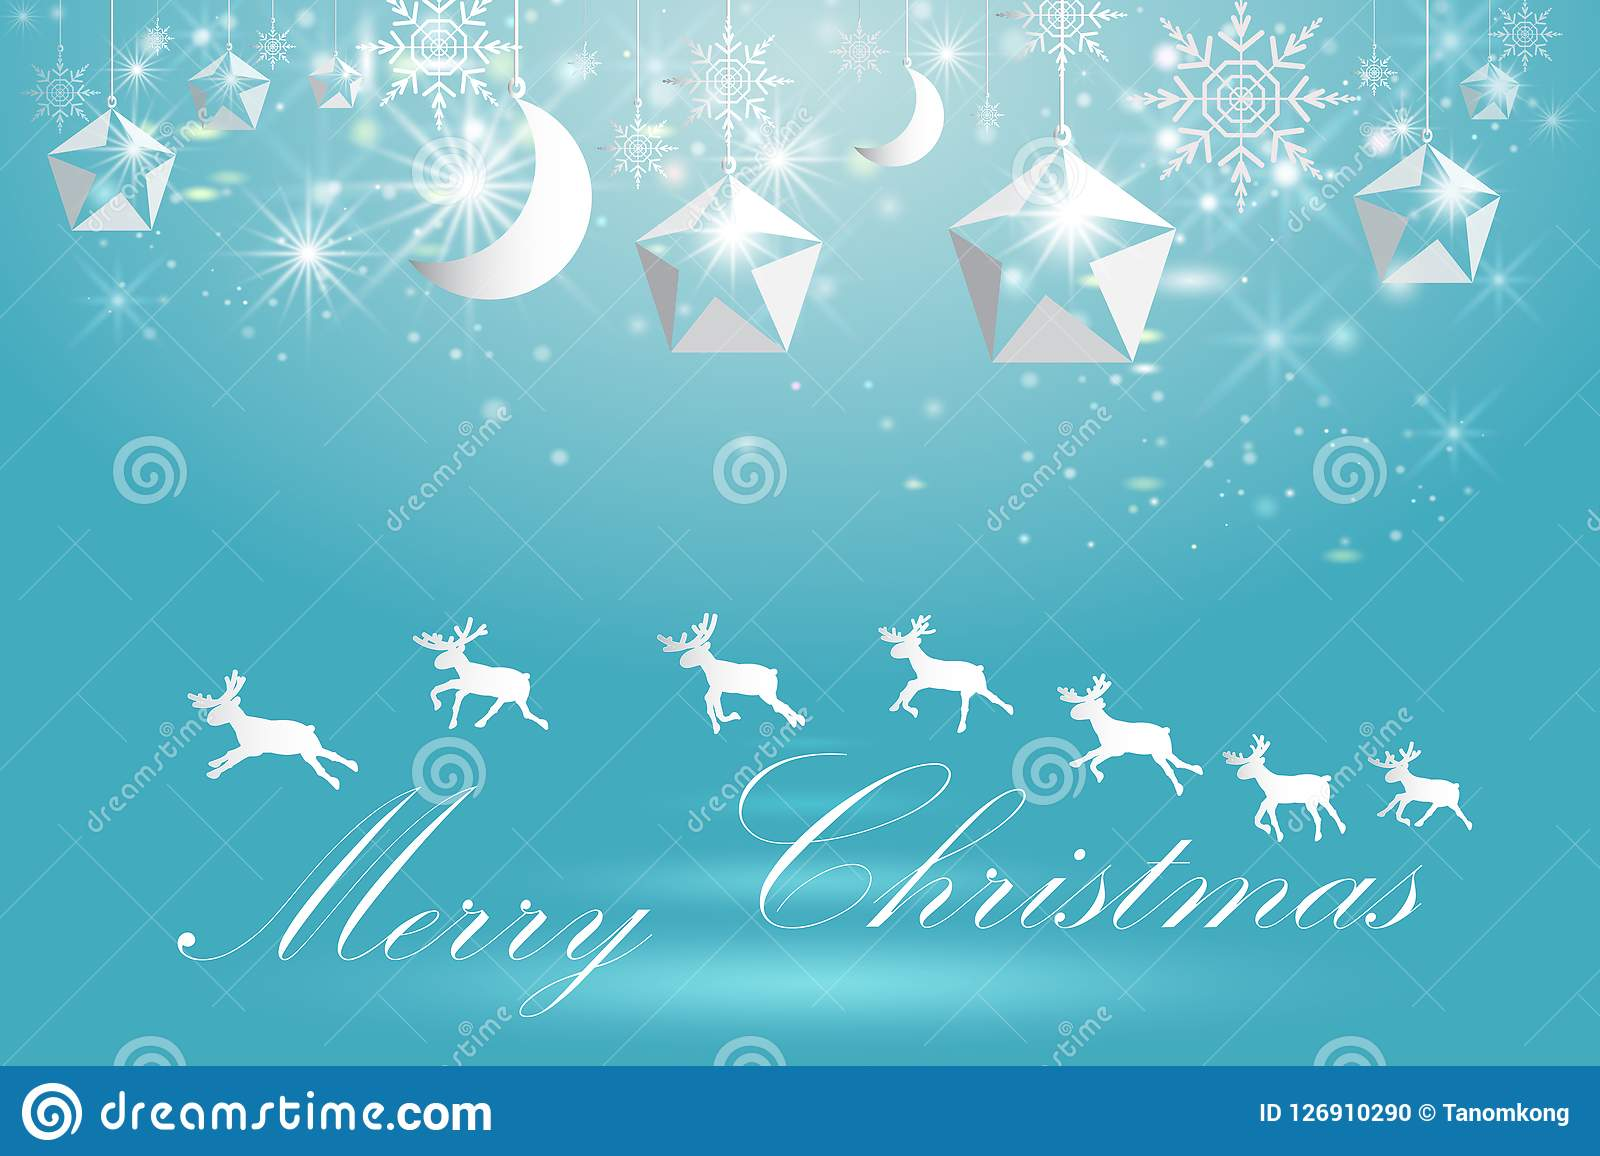 elegant christmas poster template with snowflakes and deer stock